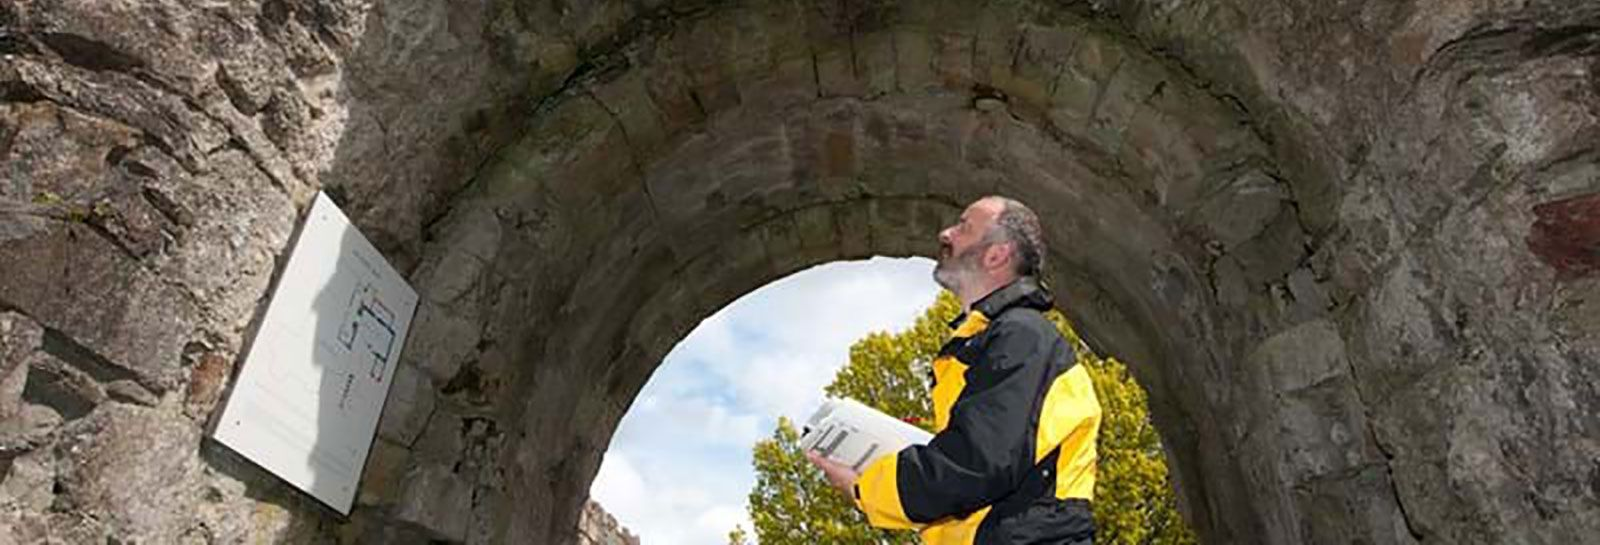 Man holding paperwork and looking at a plan on the wall of a historic archway. banner image